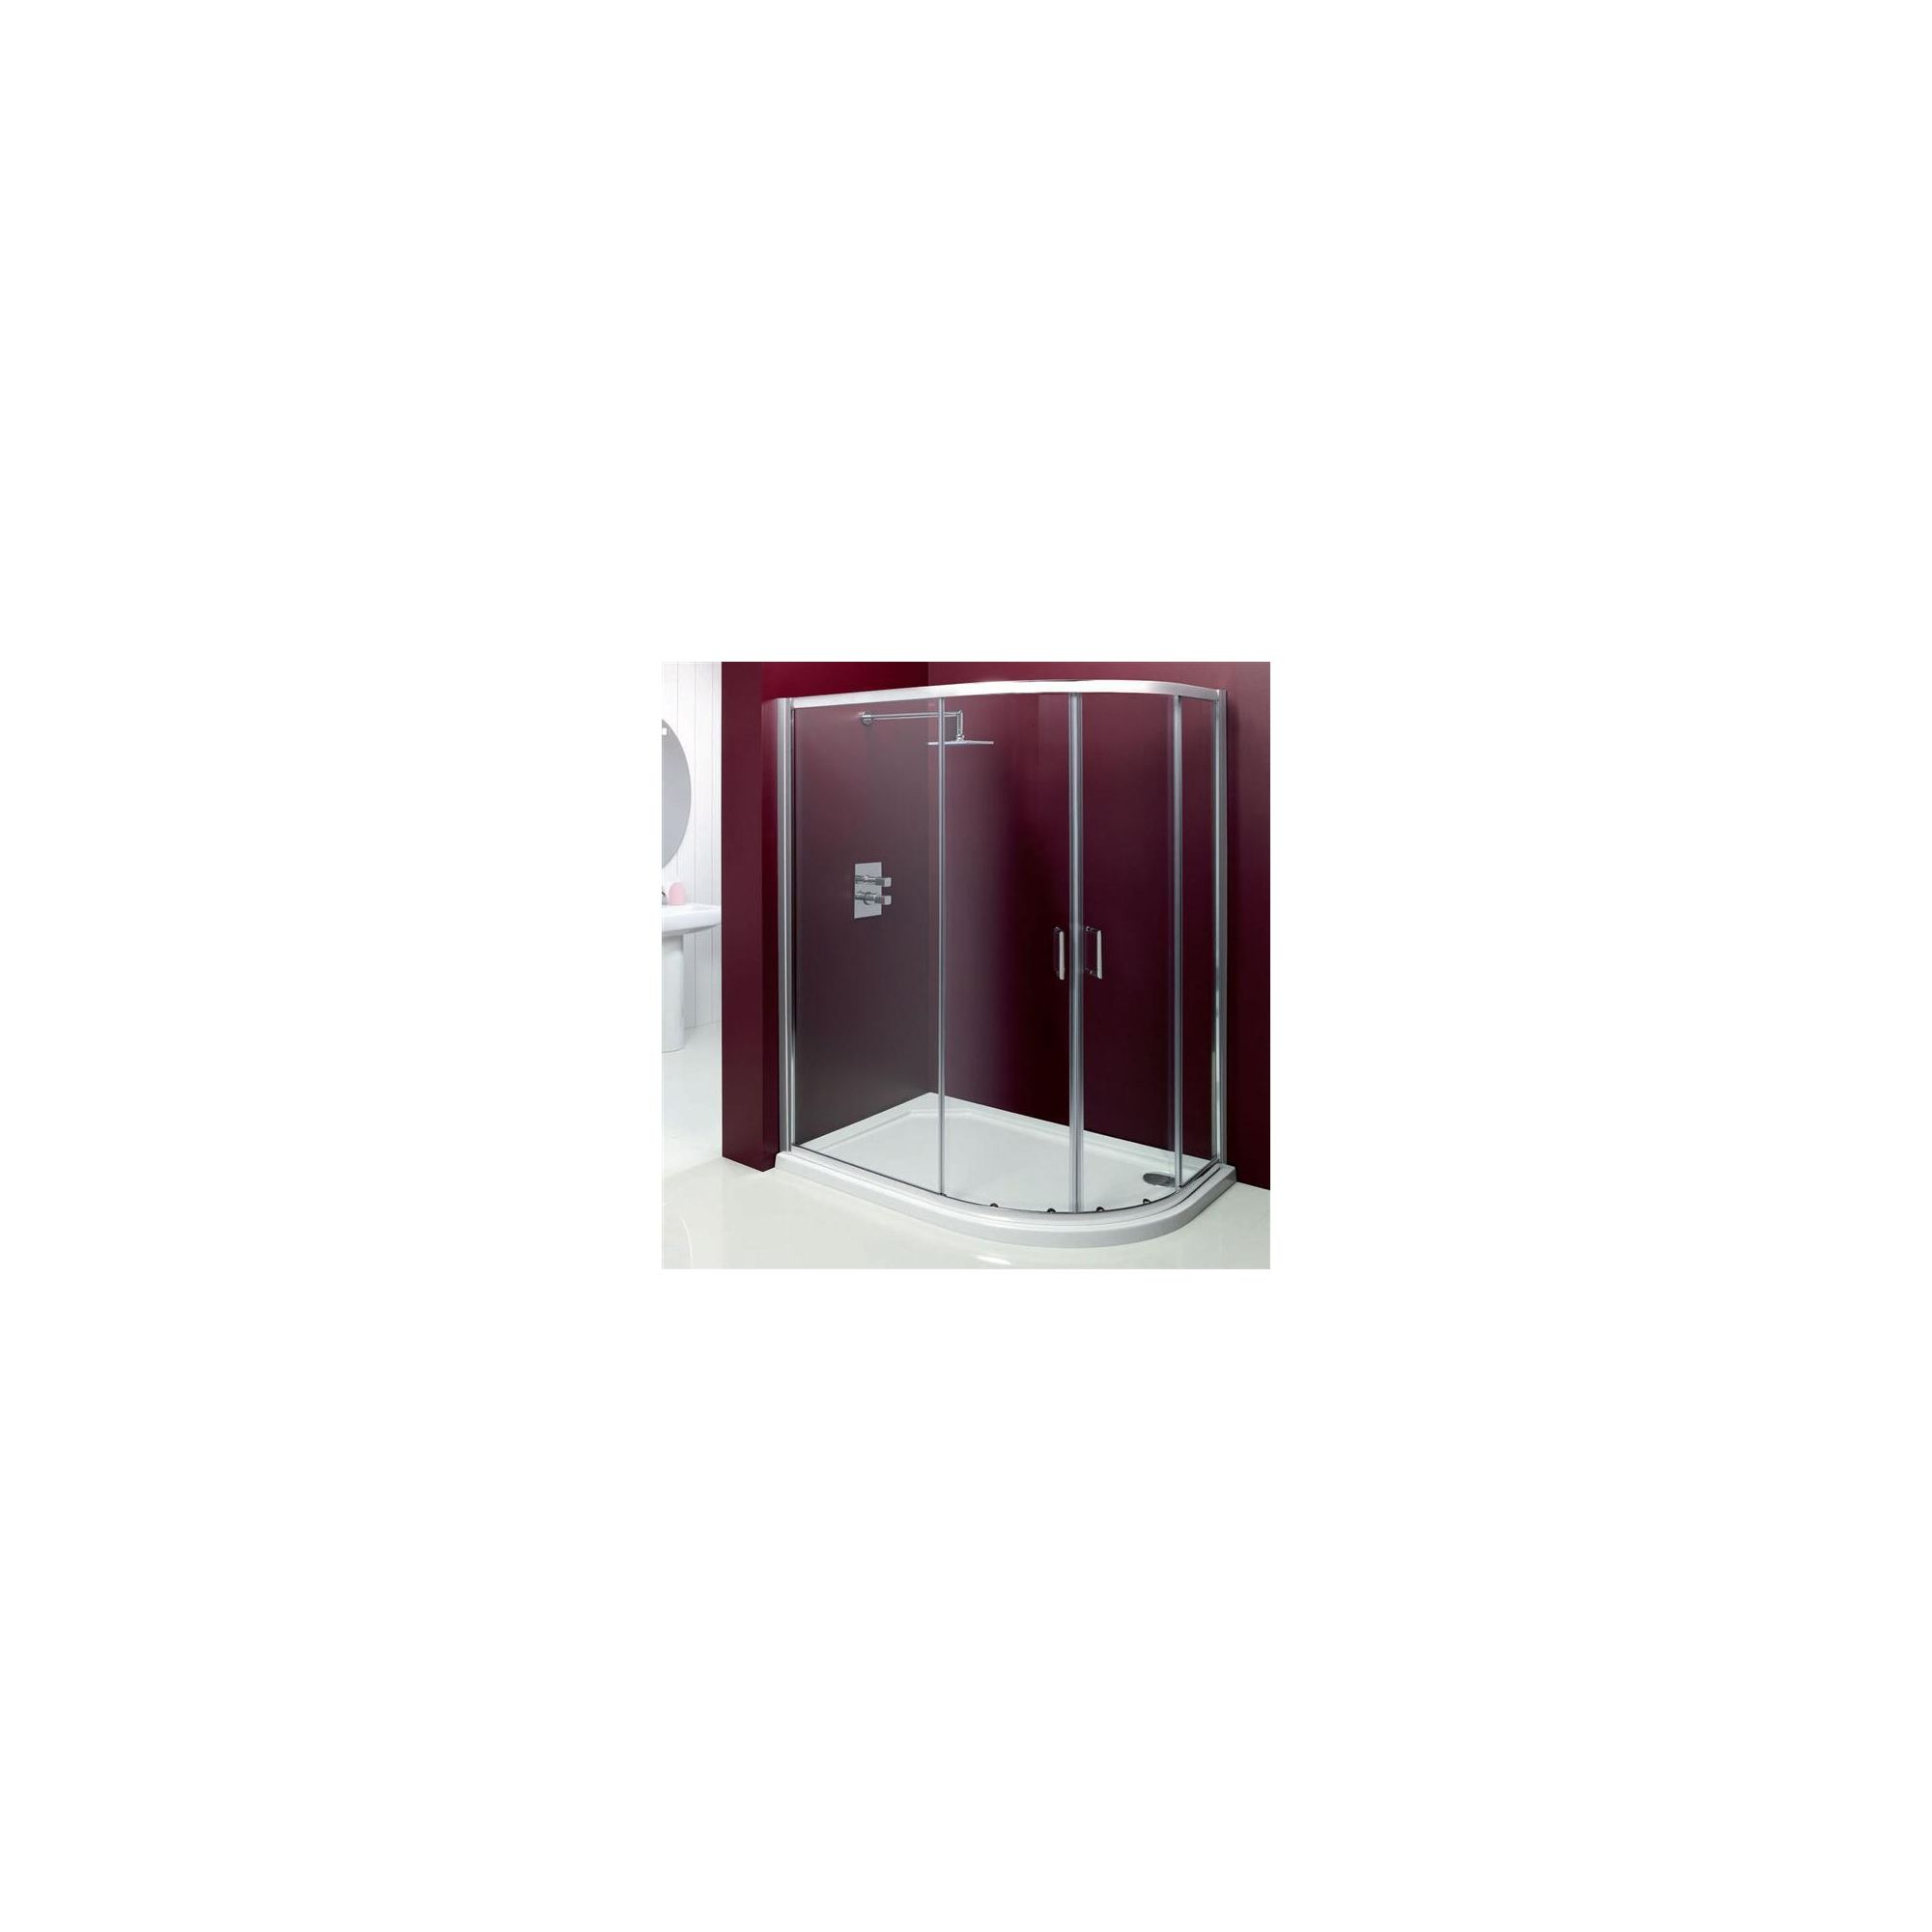 Merlyn Vivid Entree Offset Quadrant Shower Enclosure, 900mm x 760mm, Right Handed, Low Profile Tray, 6mm Glass at Tesco Direct